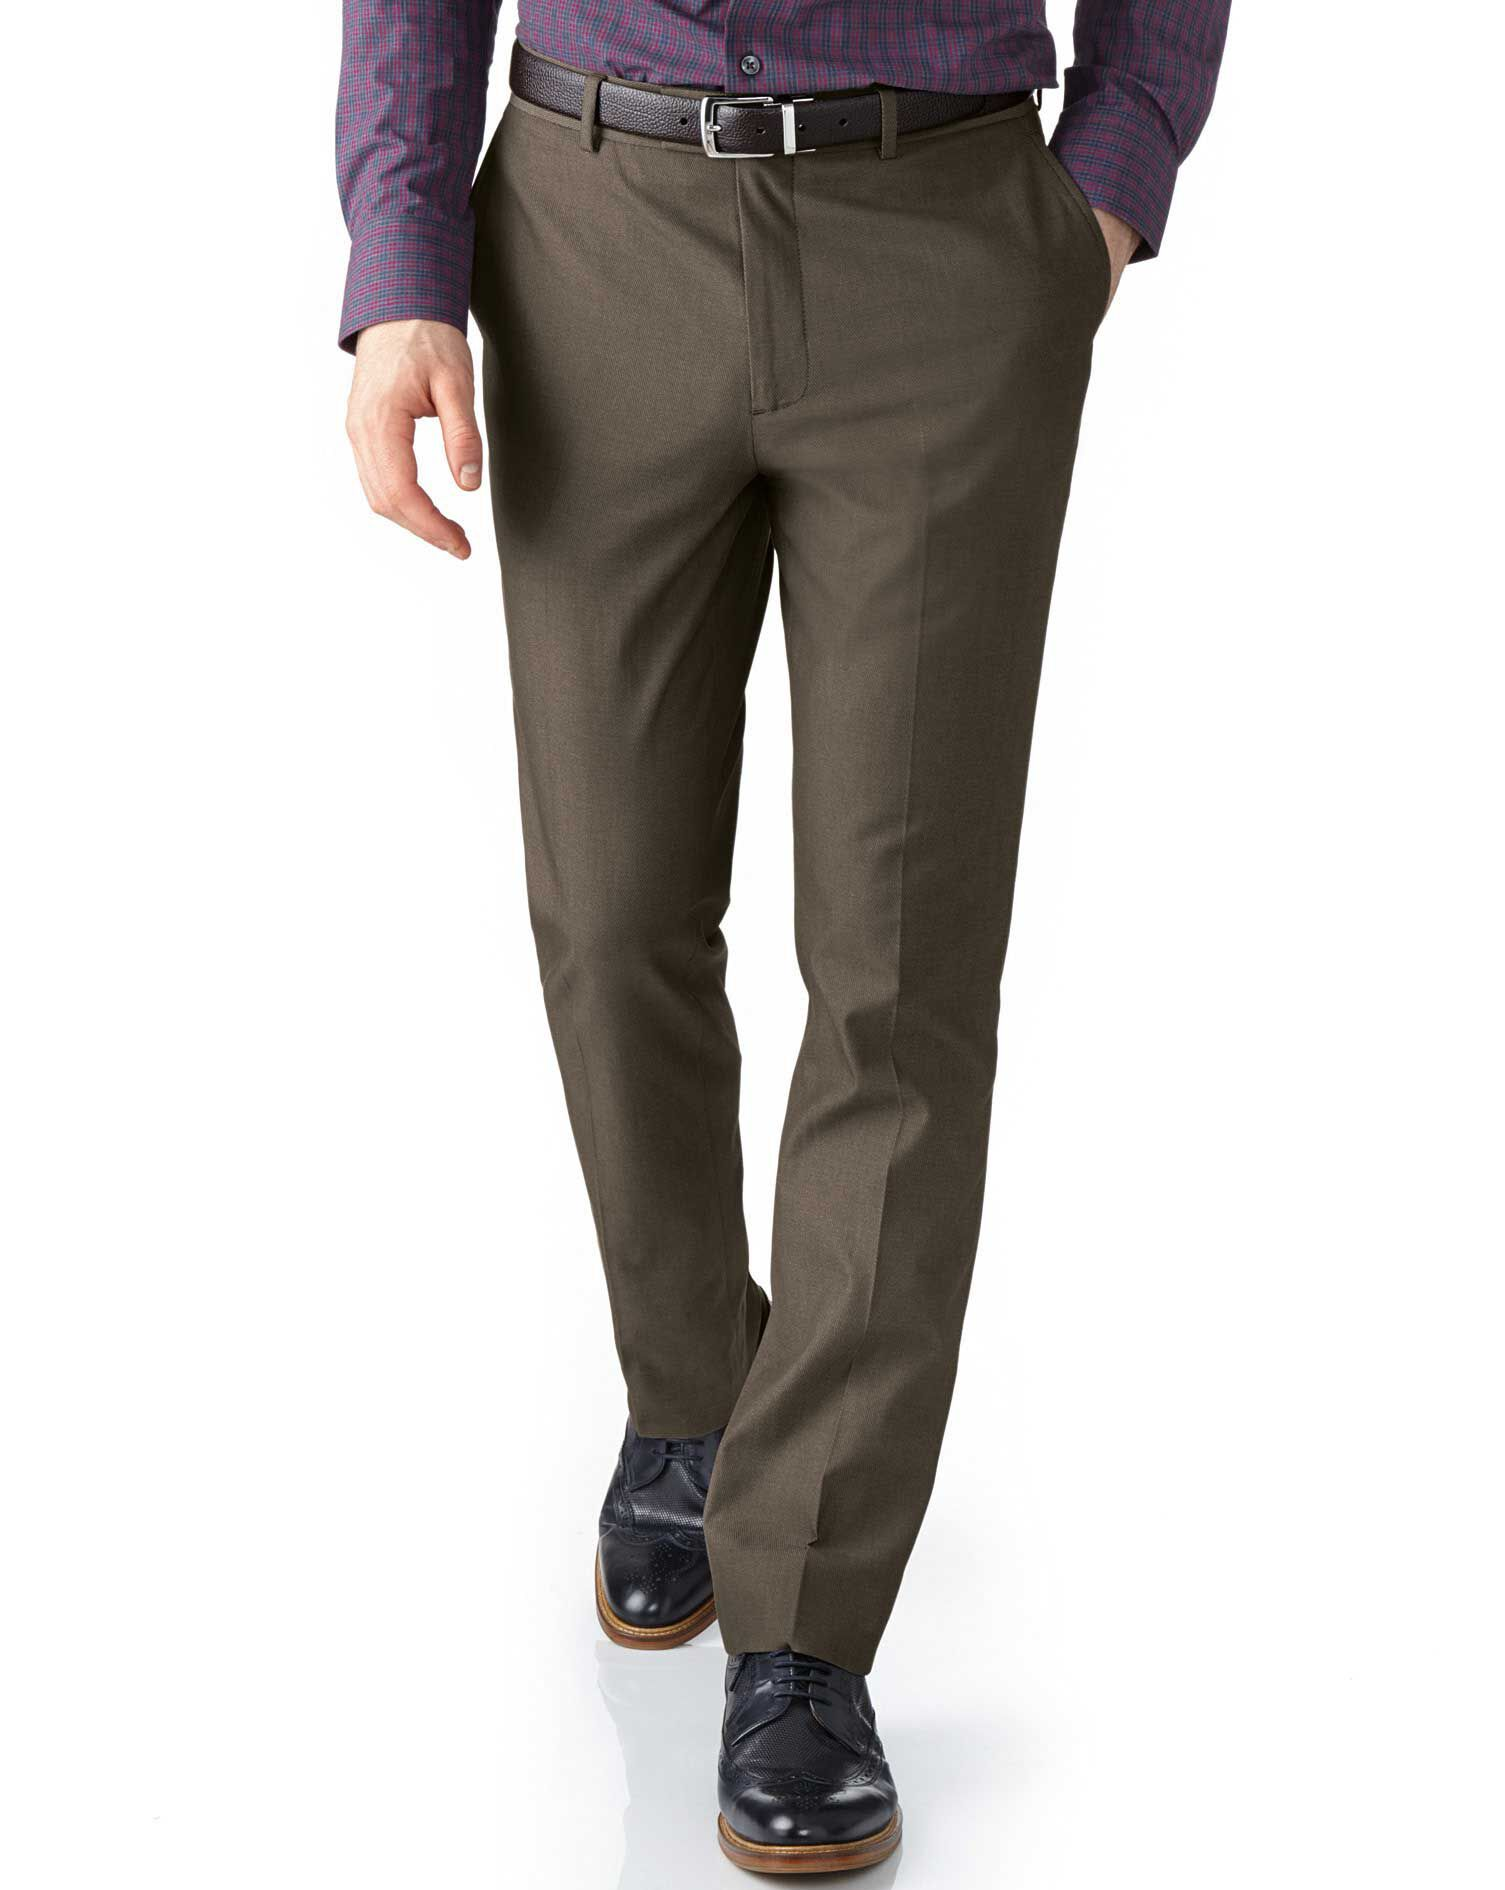 Brown Extra Slim Fit Stretch Cavalry Twill Cotton Chino Trousers Size W32 L32 by Charles Tyrwhitt